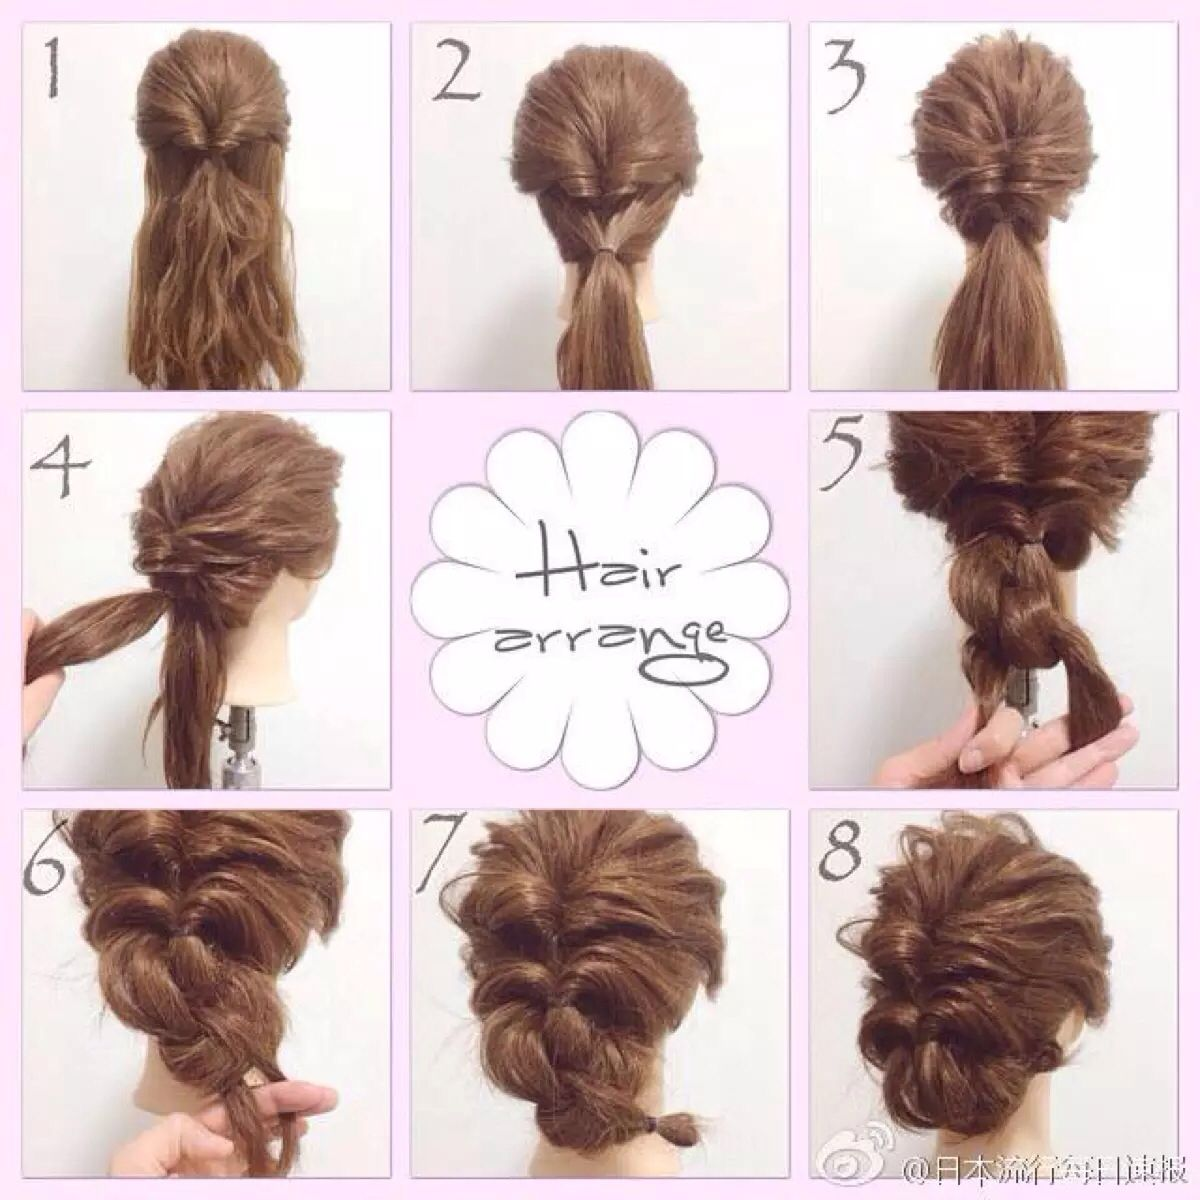 Pin by leah altink on haren pinterest hair style updos and makeup